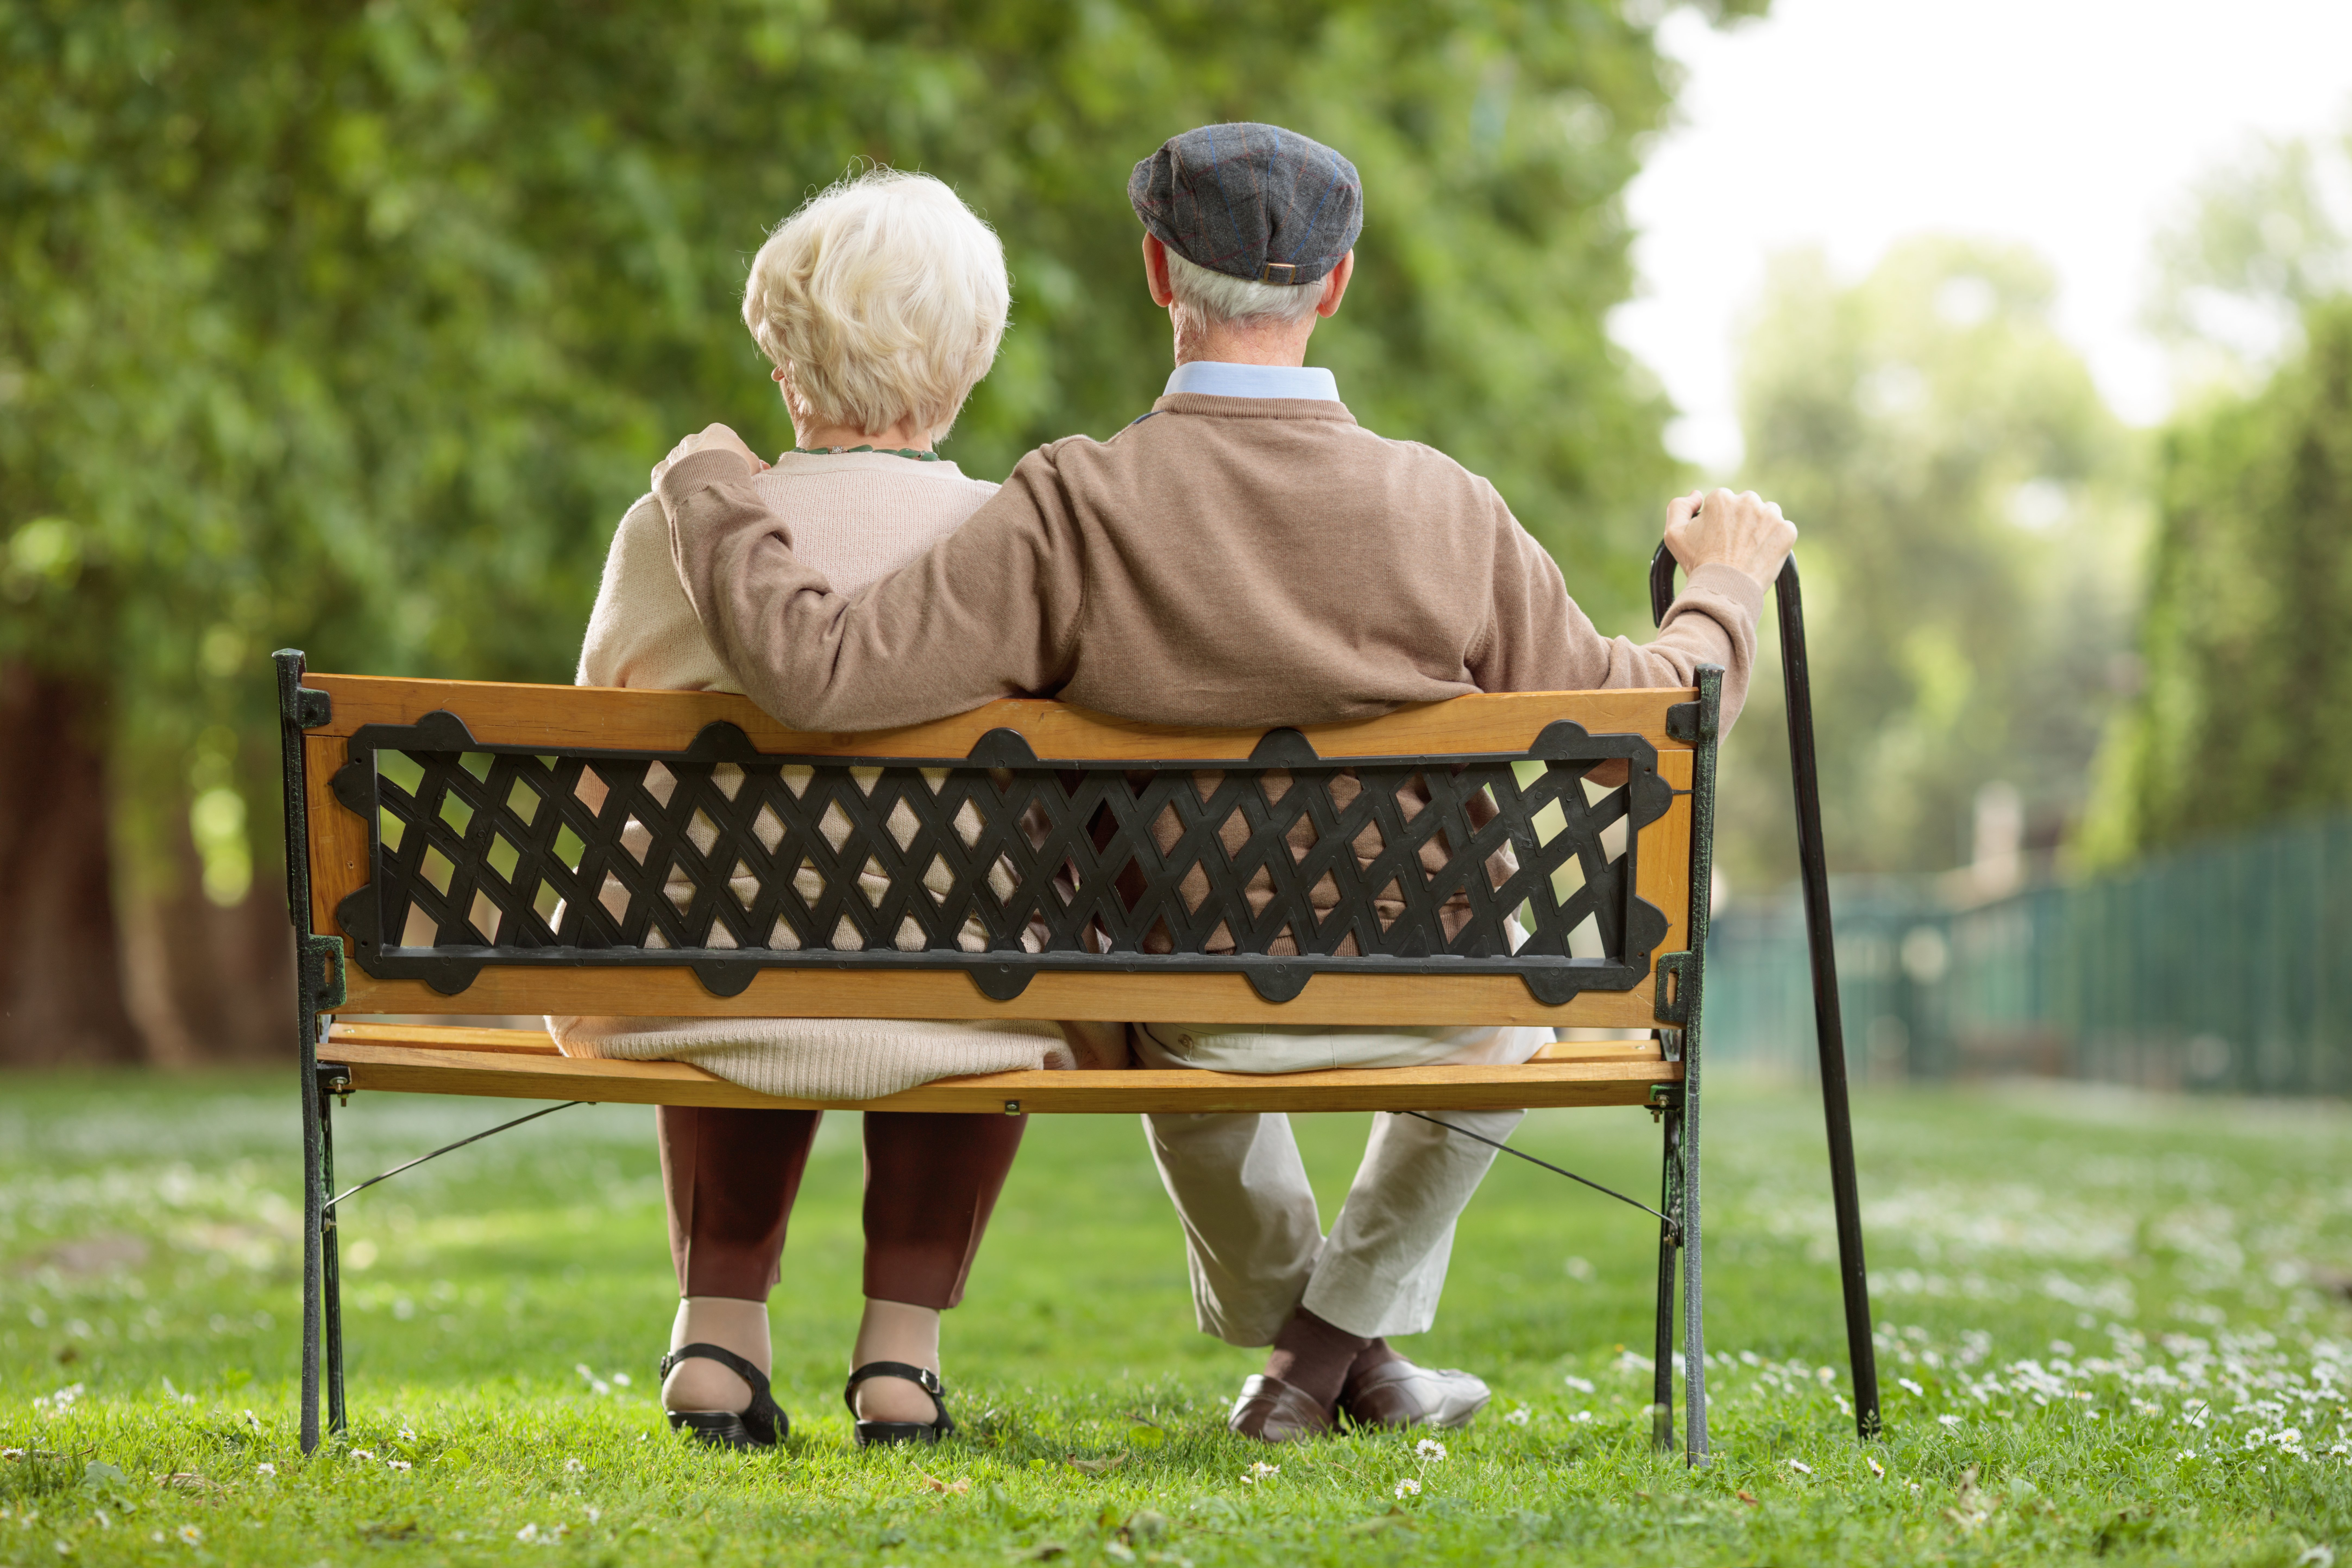 Rear view shot of a senior couple sitting on a wooden bench in the park | Photo: Shutterstock.com